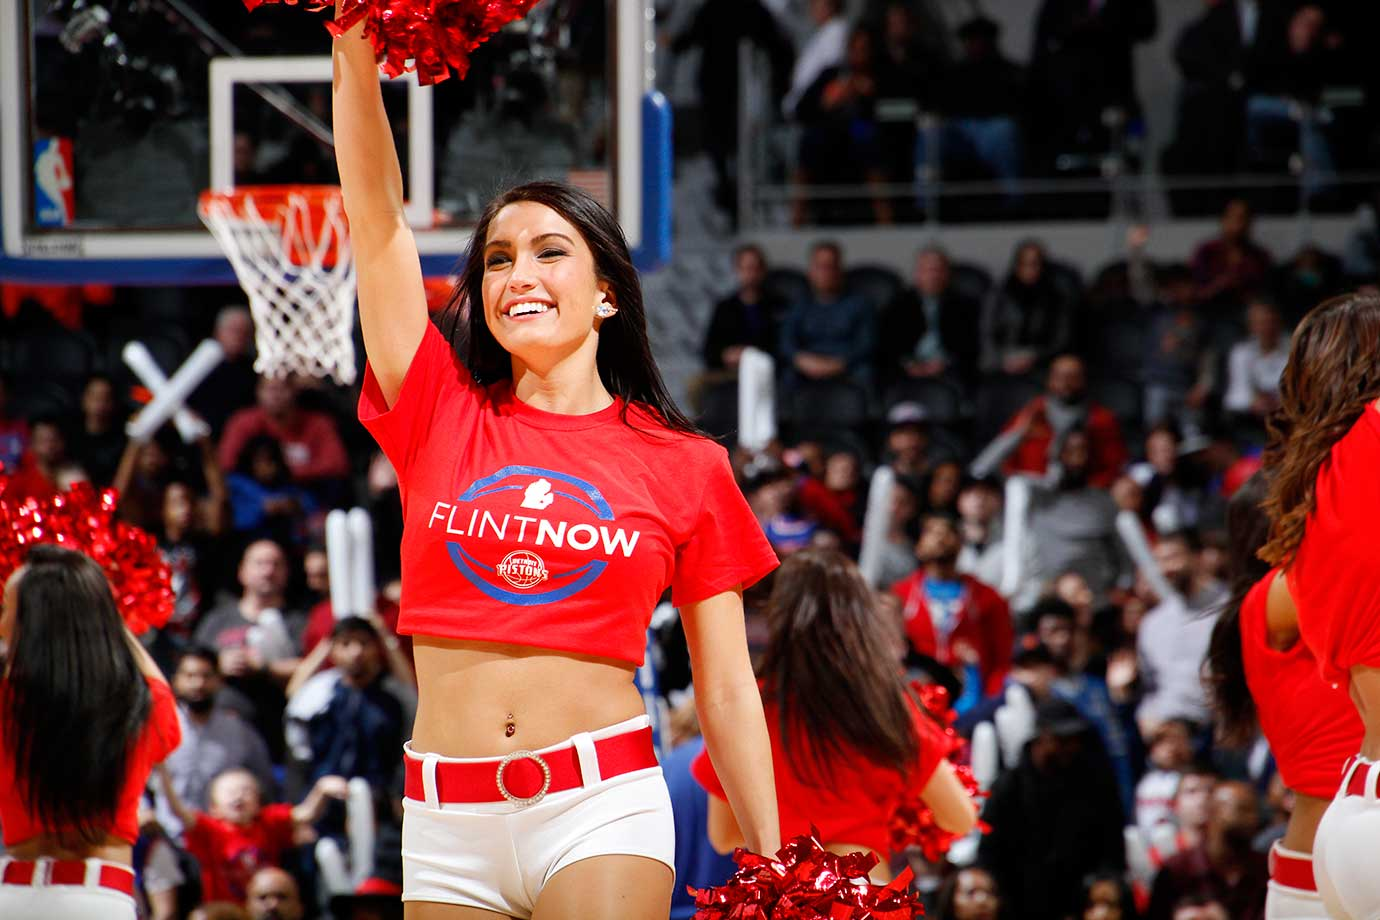 The Detroit Pistons dance team is seen during the game against the New York Knicks.